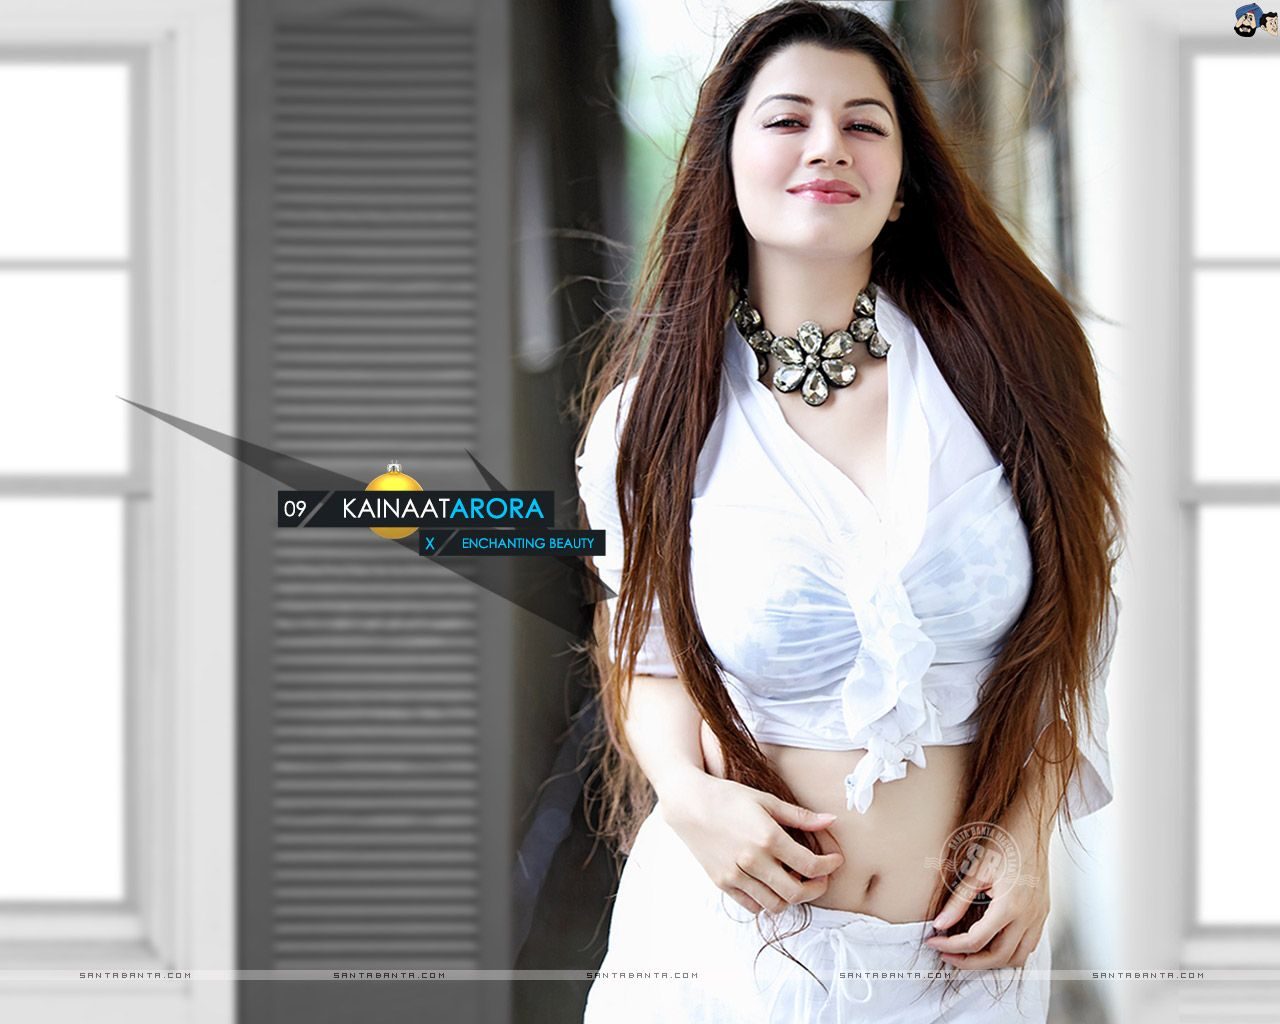 51 Sexy Kainaat Arora Boobs Pictures Are Hot As Hellfire